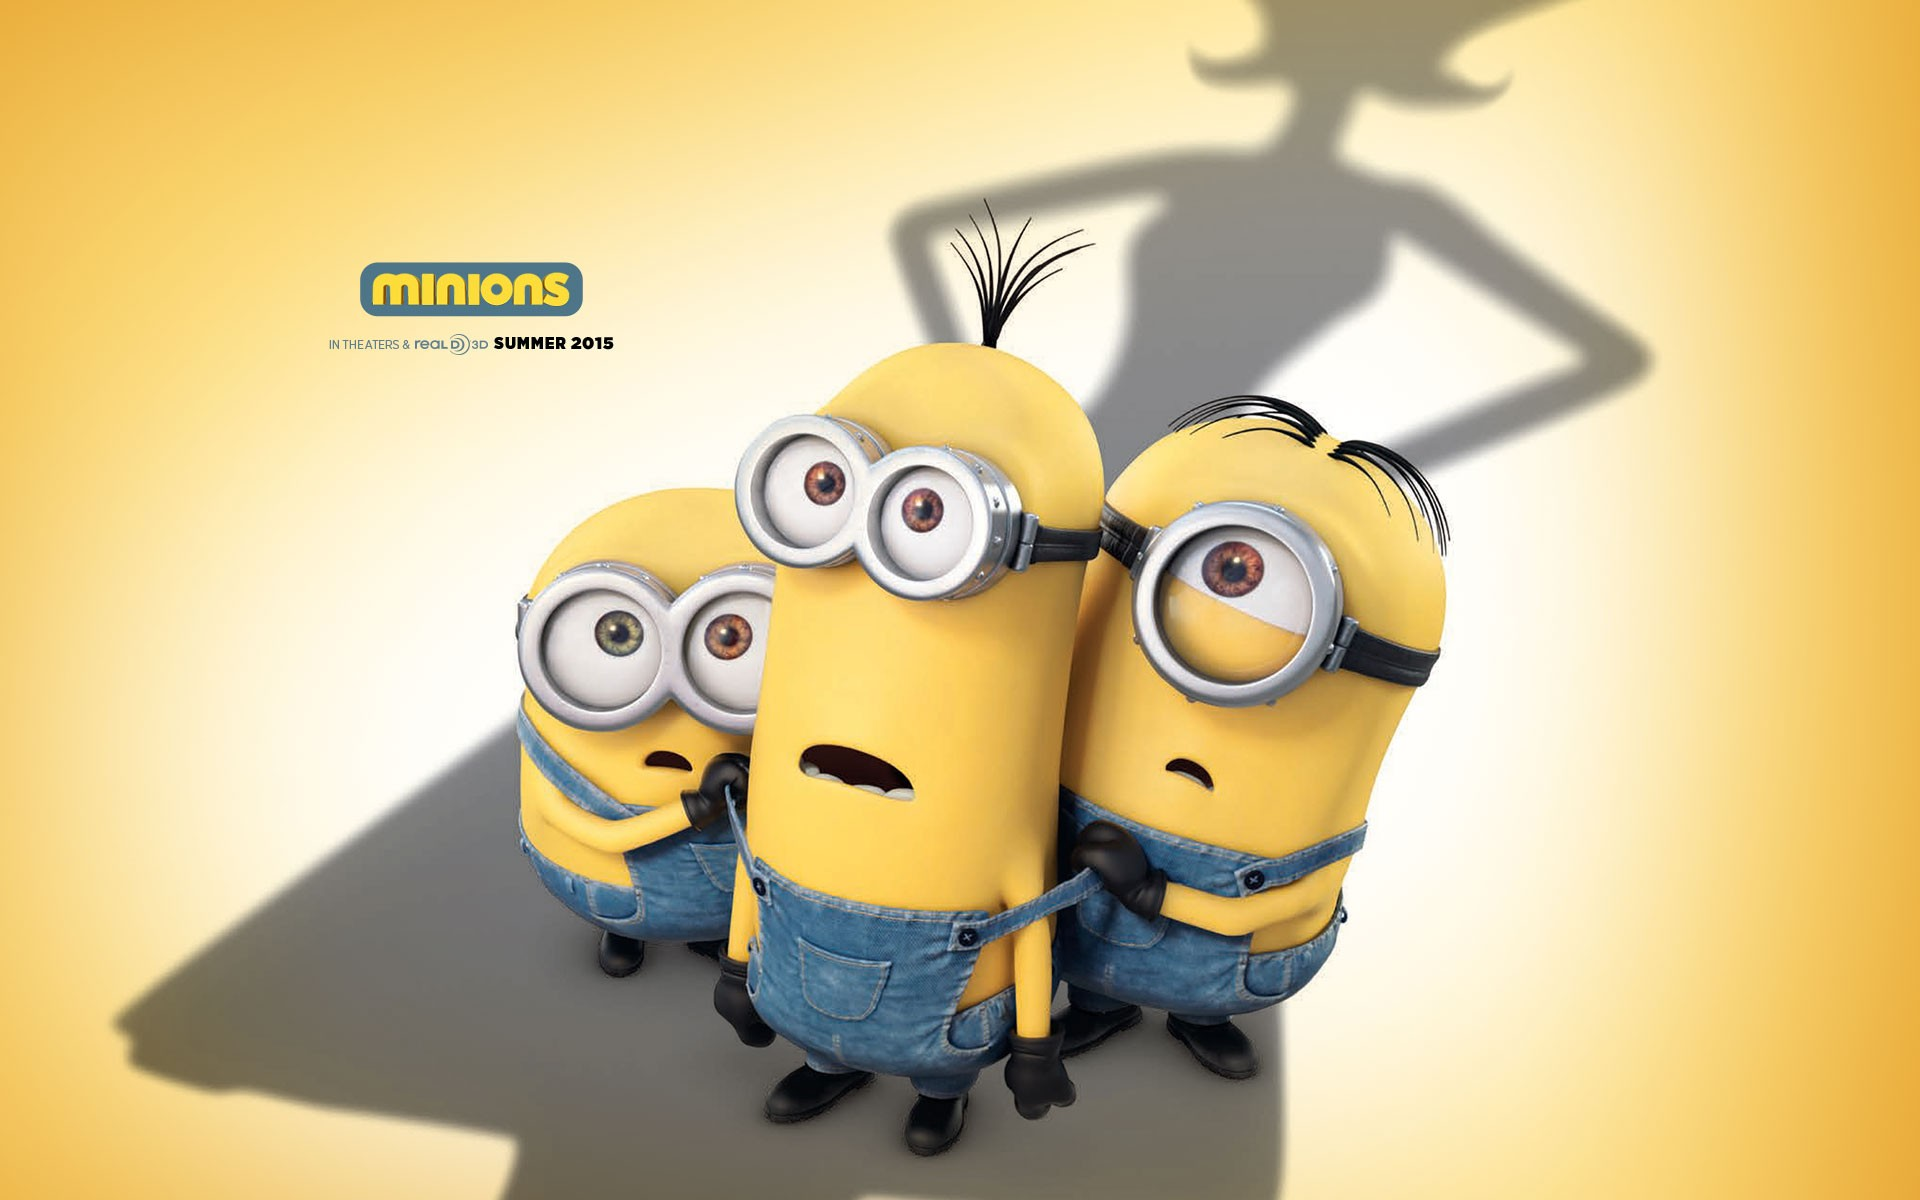 minions wallpaper download free awesome high resolution